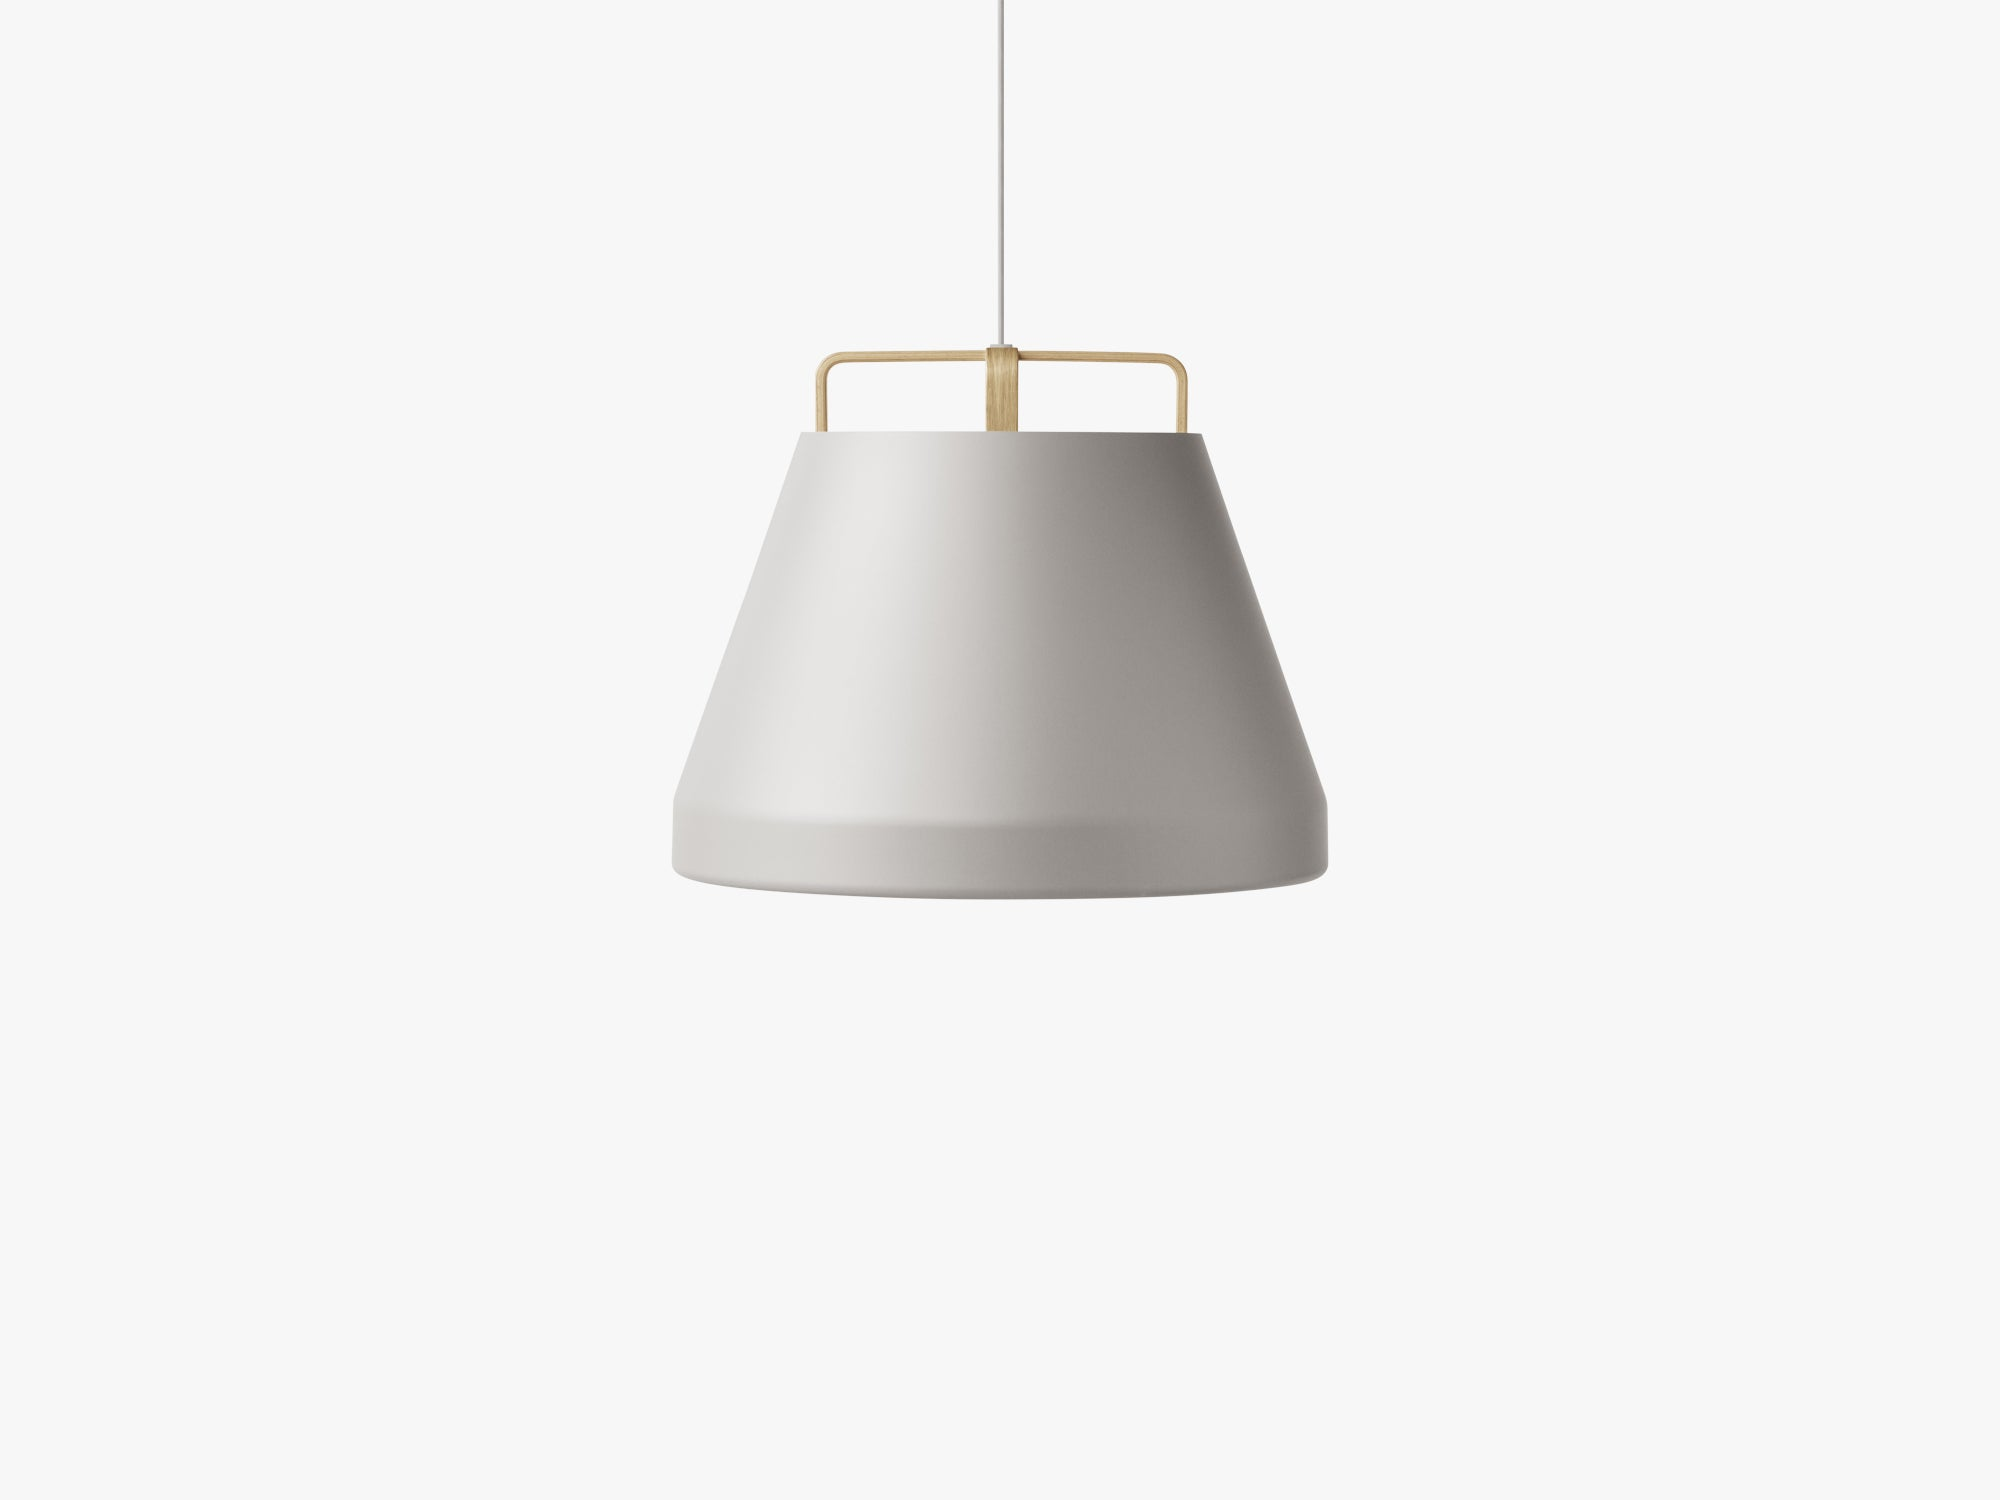 Voyage Pendant M1, Ø58 Light Grey/Oak fra MILLION